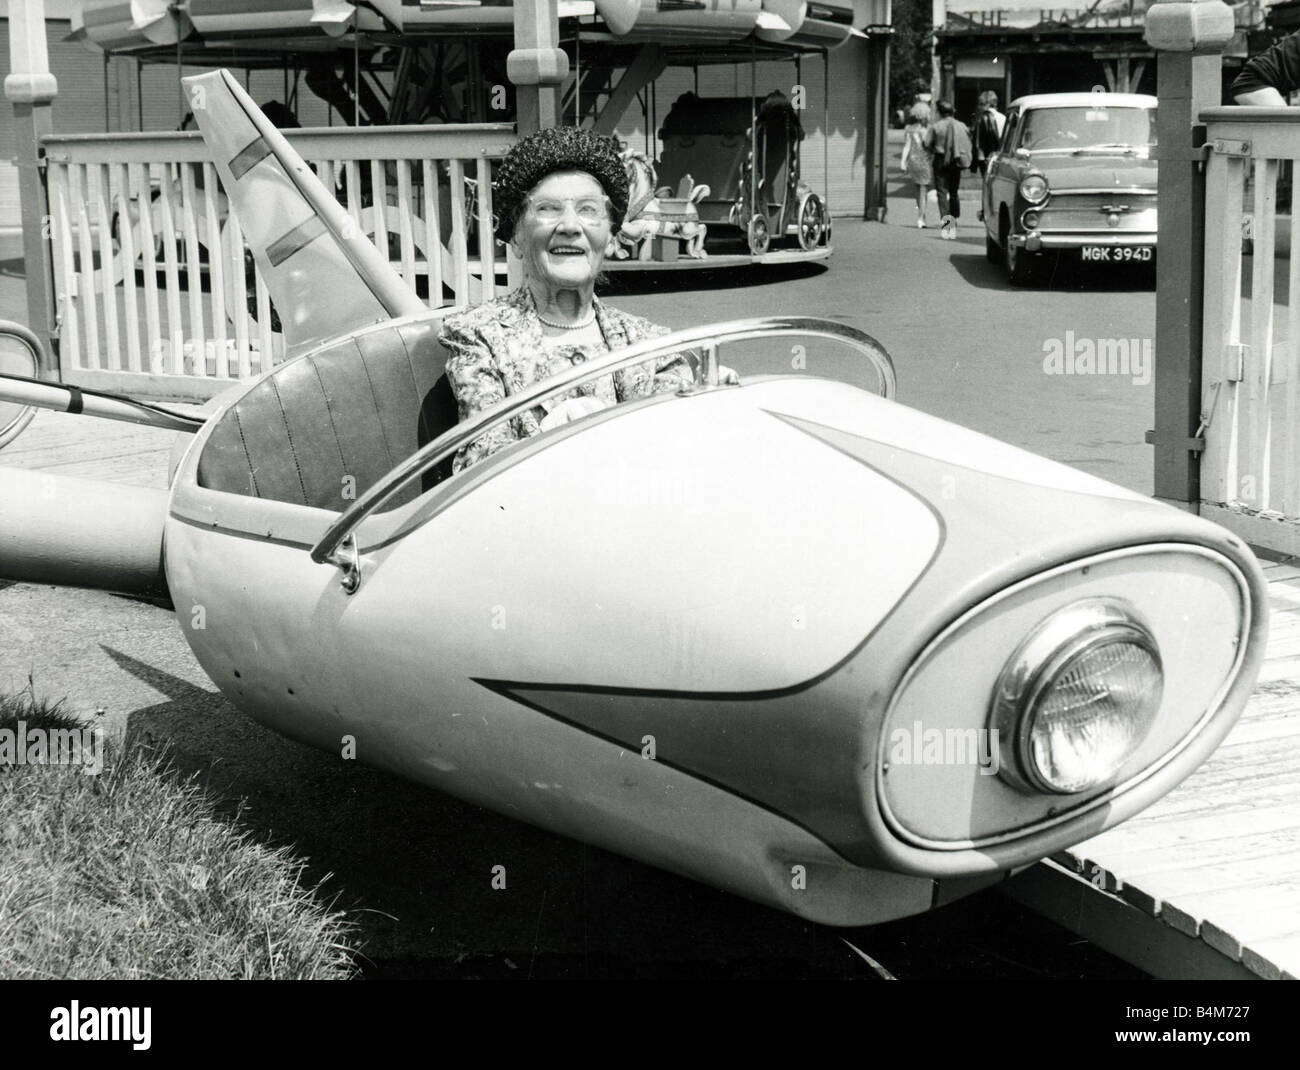 Old age pensioner Ellen Pert 101 years old rides in a fairground dive bomber car ride 1966 - Stock Image